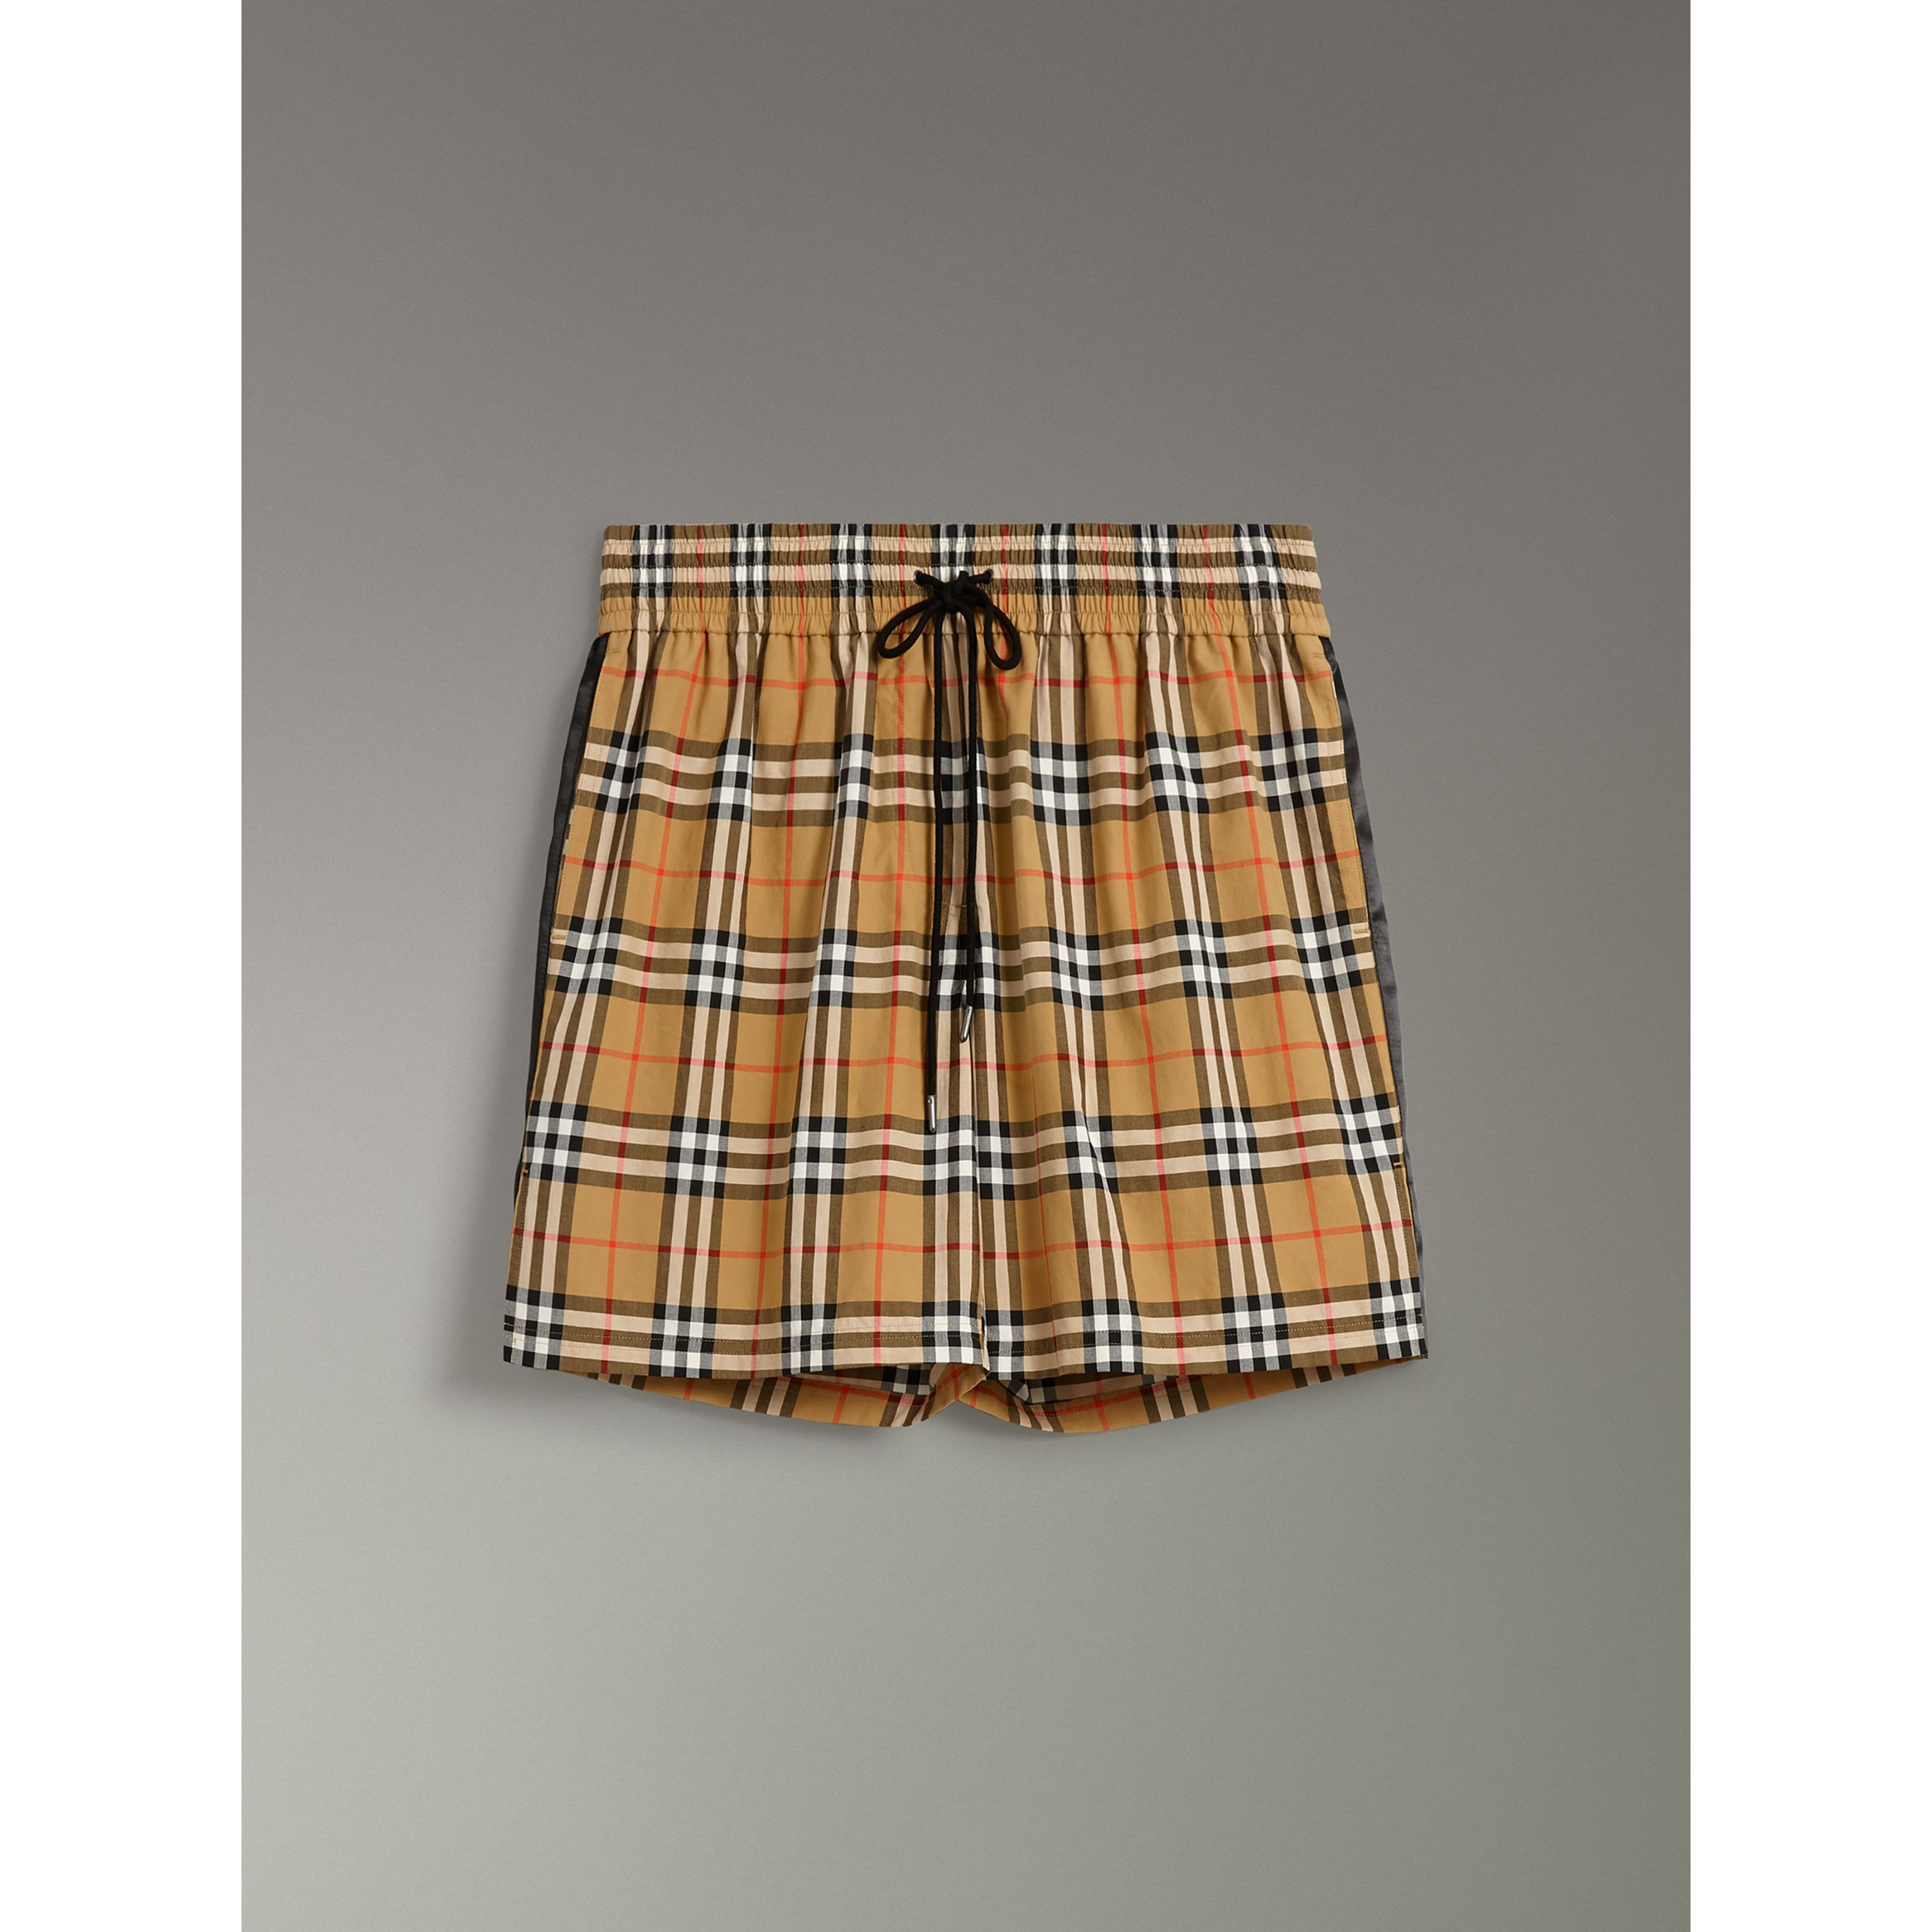 Vintage Check Drawstring Shorts in Antique Yellow - Women | Burberry Australia - 4